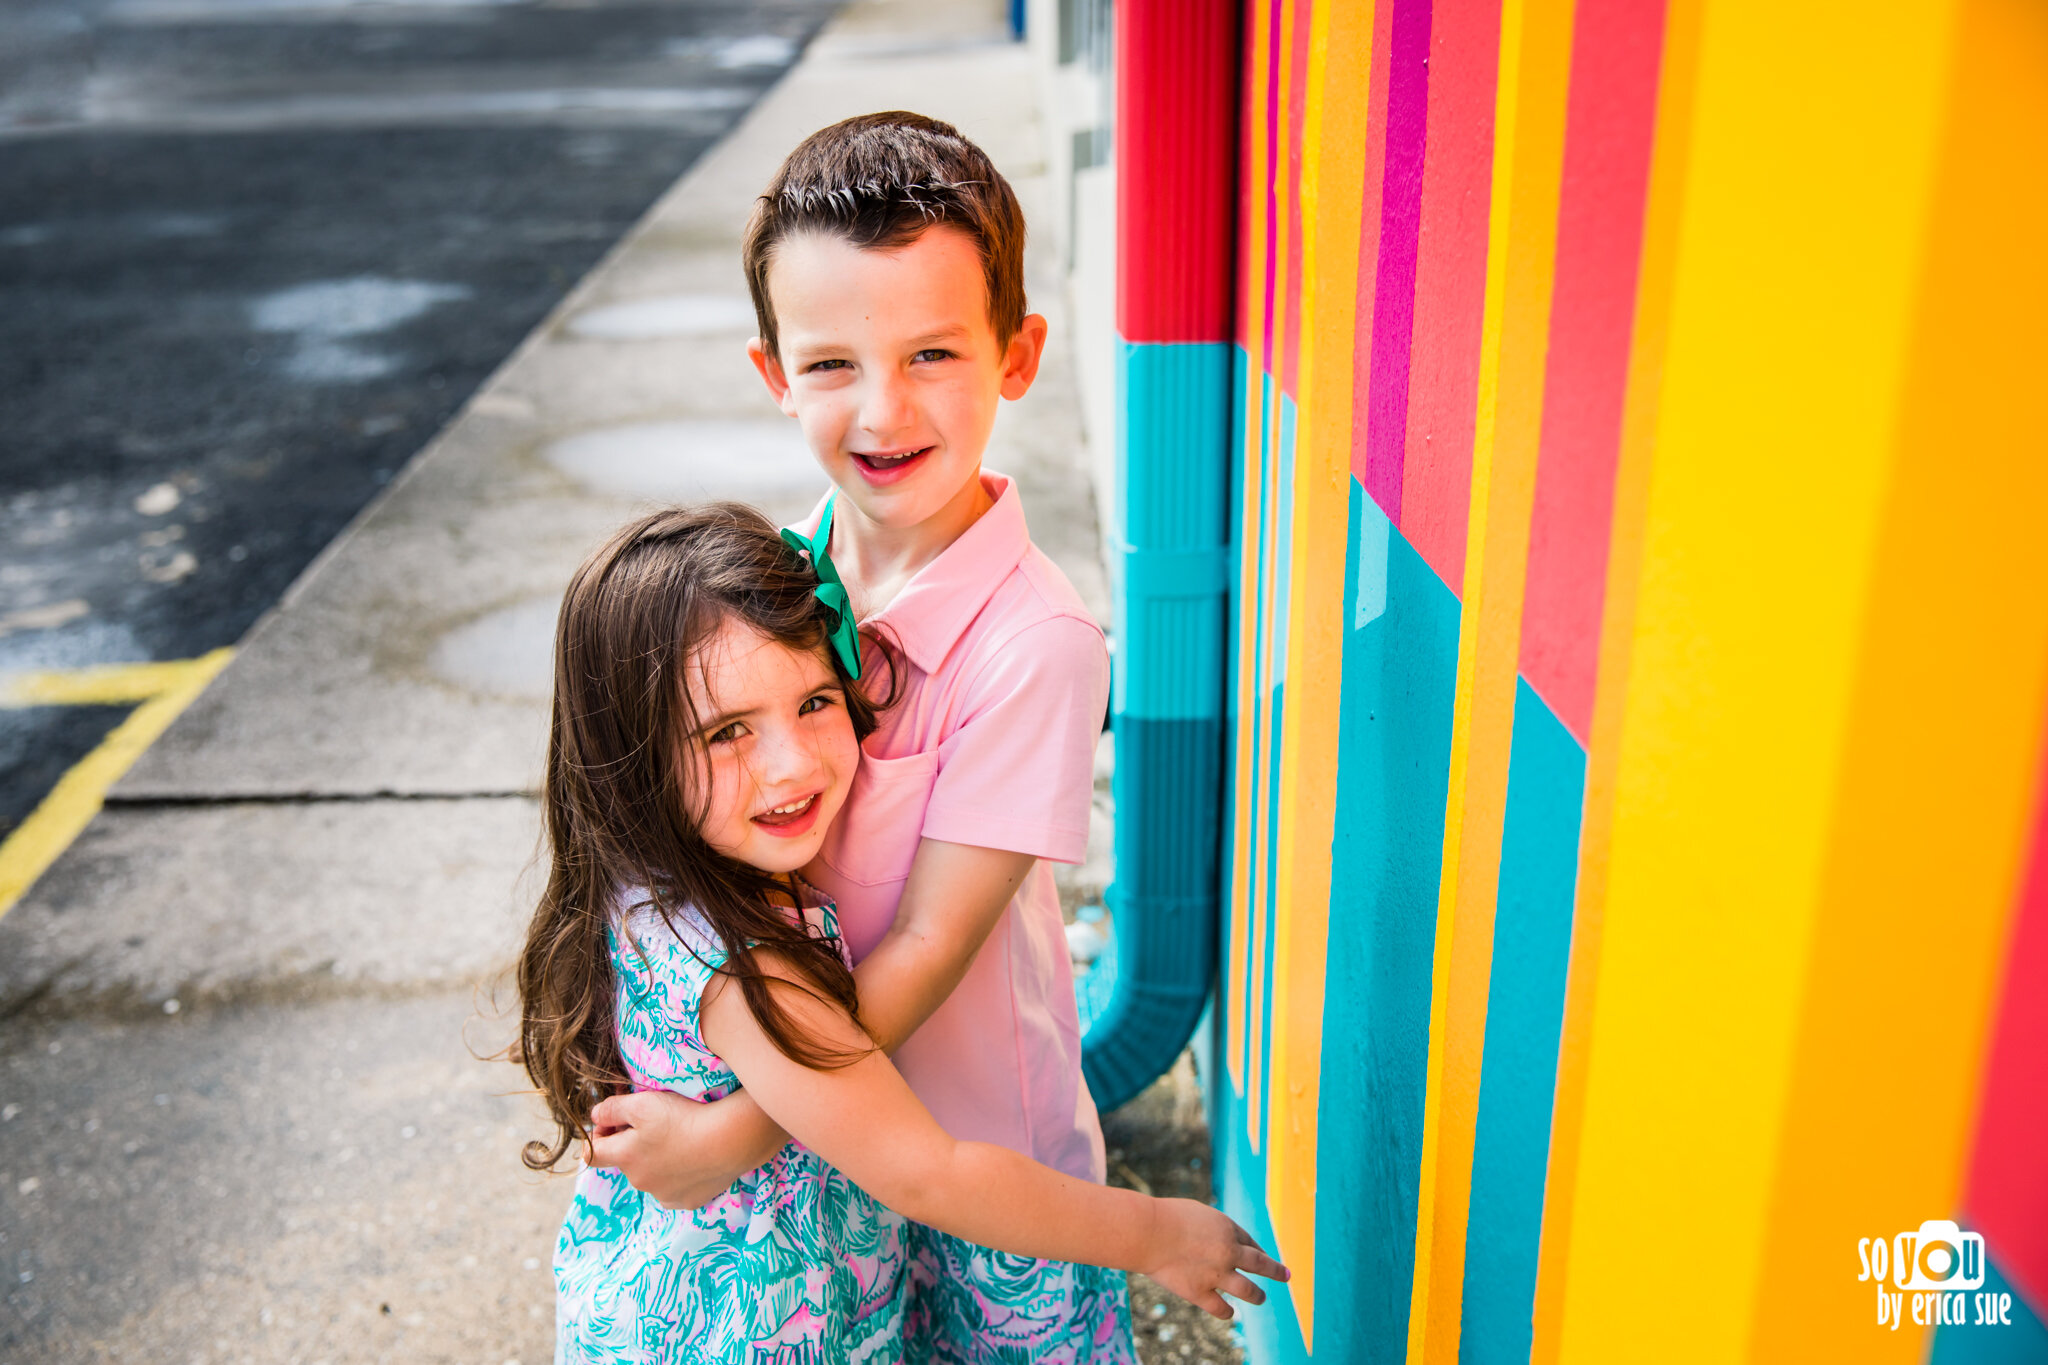 so-you-by-erica-fat-village-ft-lauderdale-murals-lifestyle-family-photographer-6749.JPG